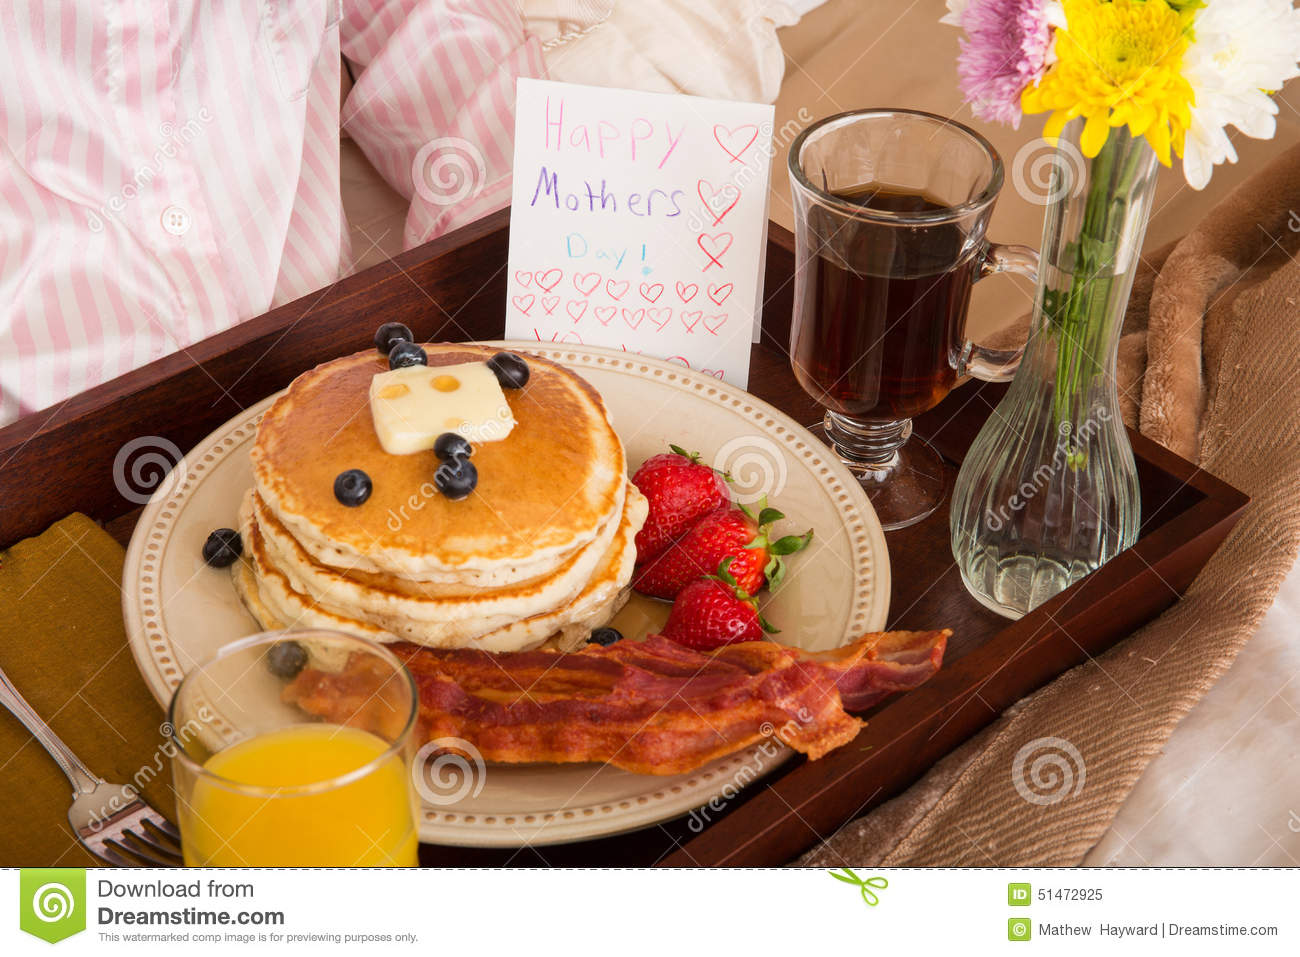 Mother S Day Breakfast In Bed Stock Image Image Of Card Juice 51472925